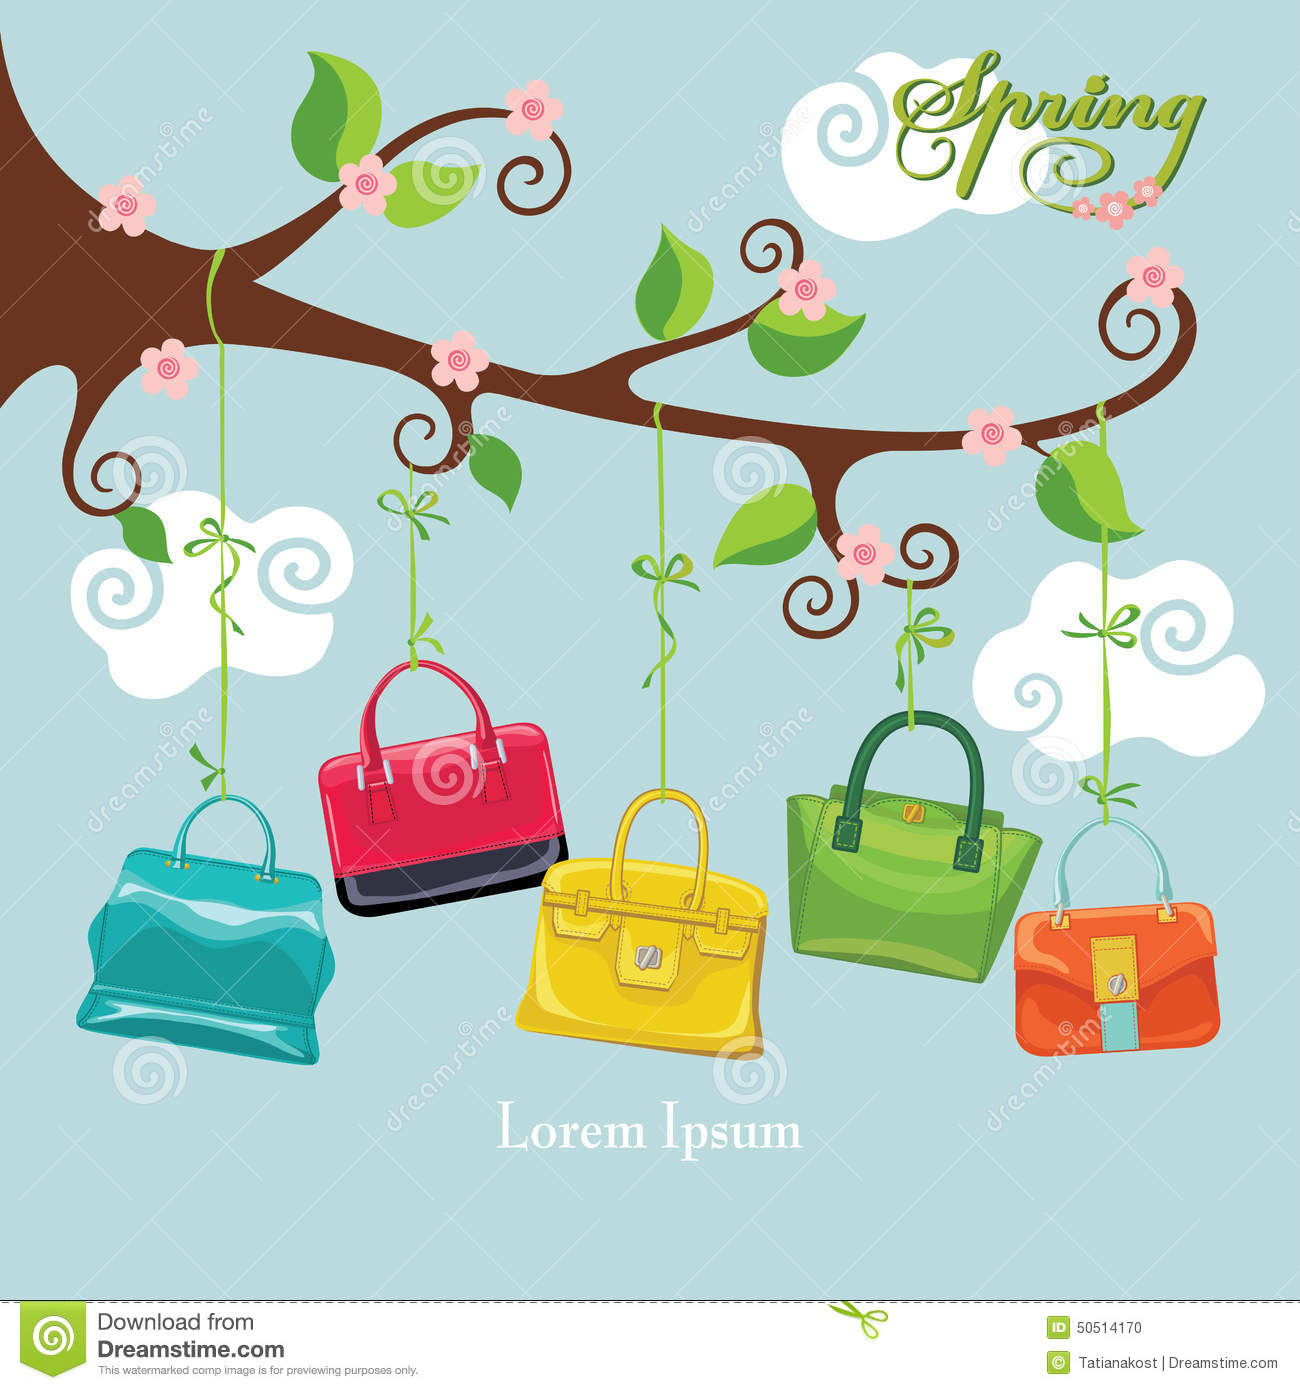 Spring flowering branch and colored handbags stock vector image